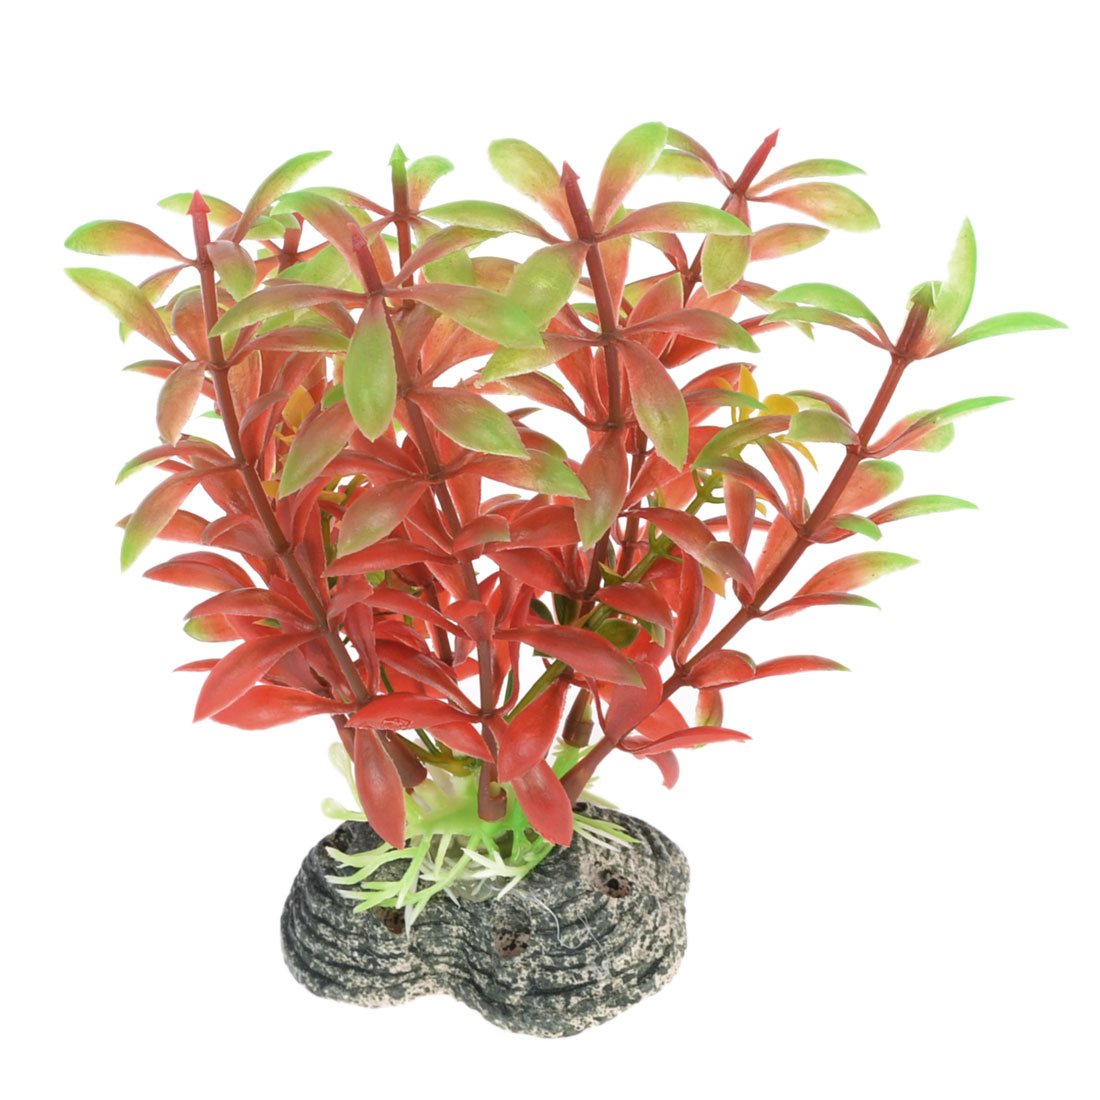 Aquarium 11cm Height Red Green Plastic Emulational Plant w Ceramic Base